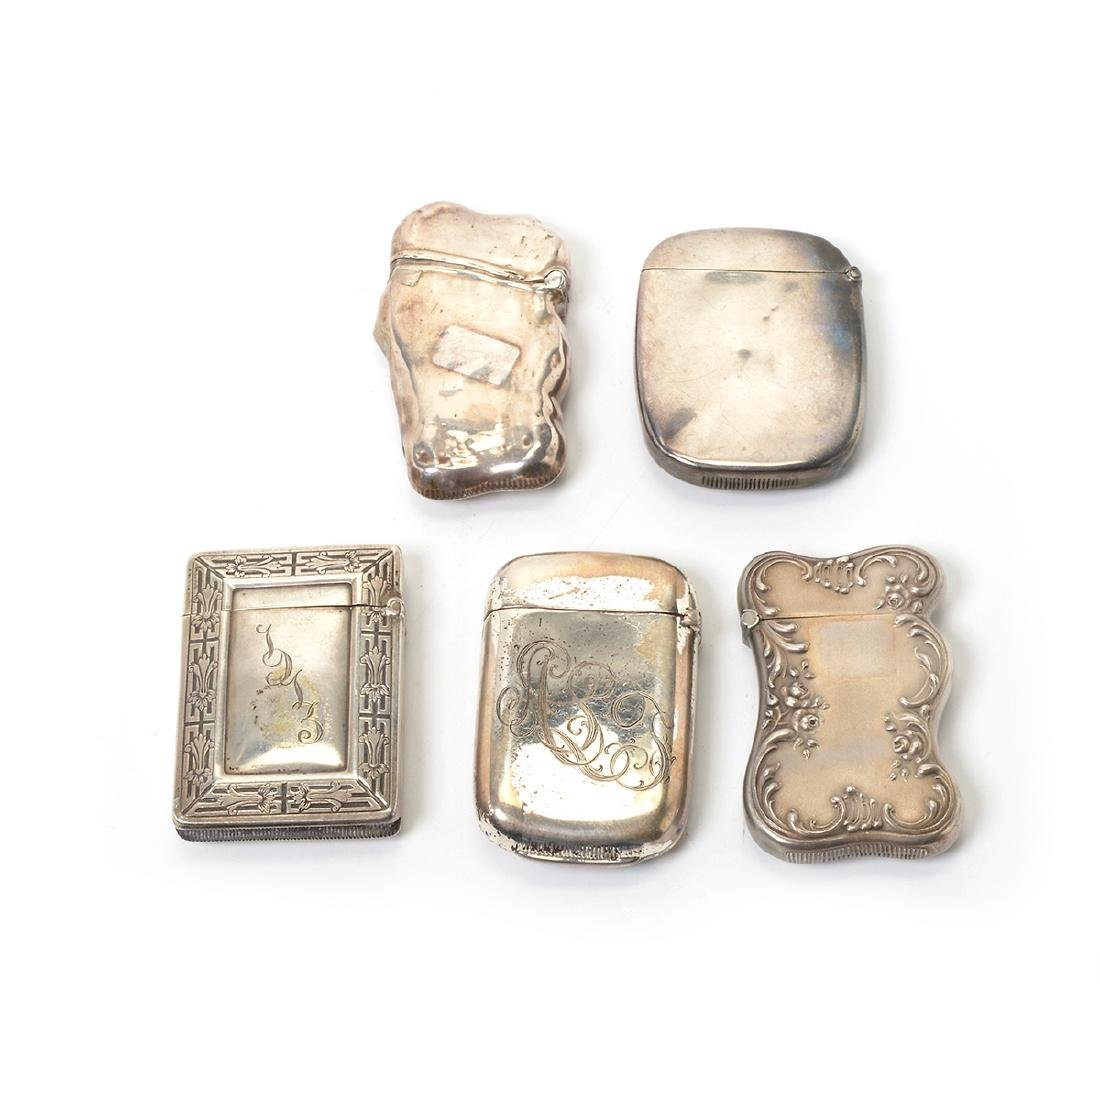 Collection of Silver Personal Articles in the Rococo - 10